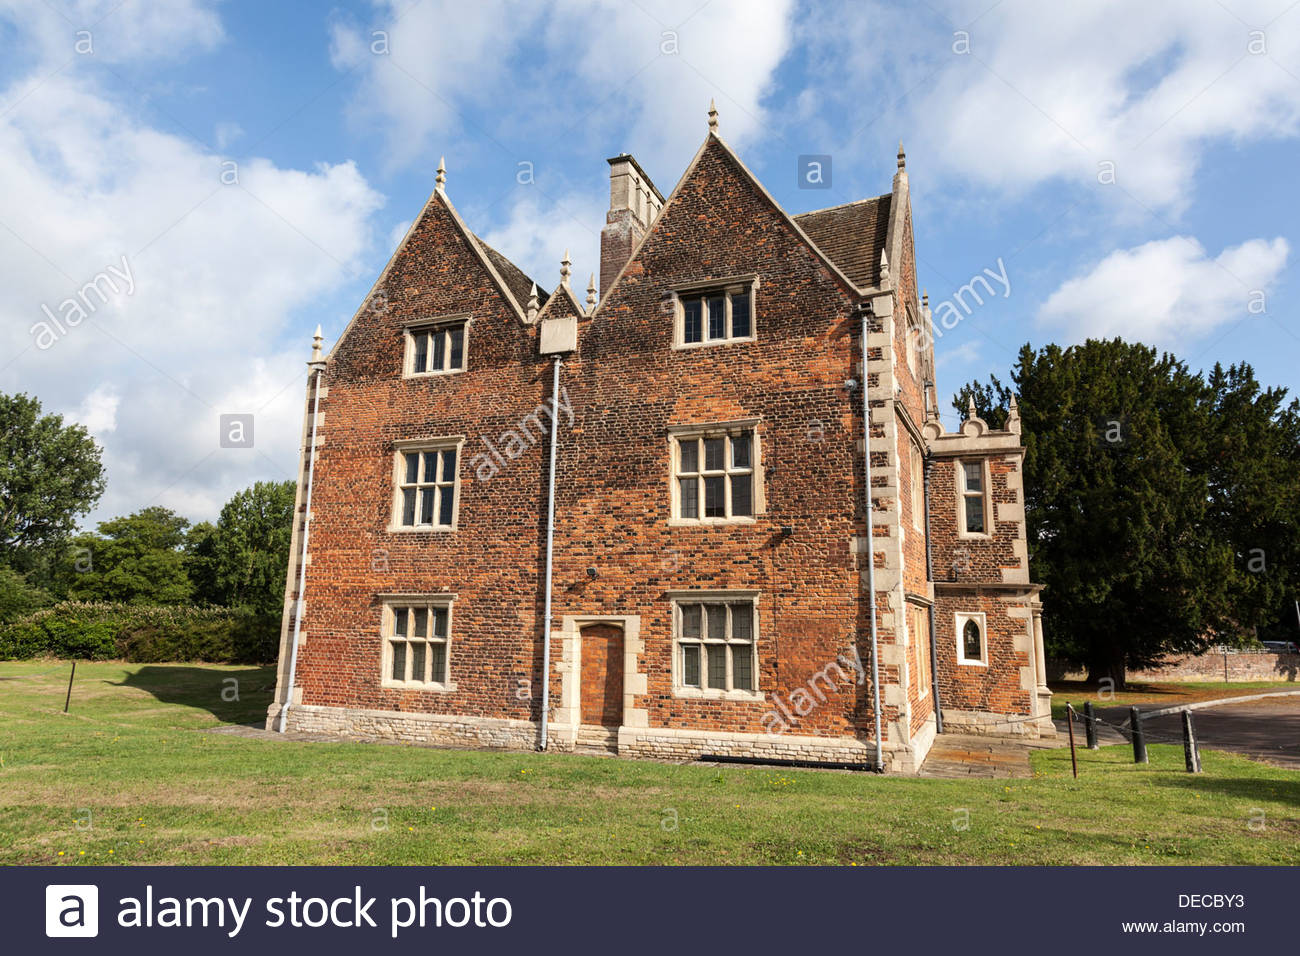 Red Hall, Grade II Listed Building in Bourne, Lincolnshire, England, UK - Stock Image